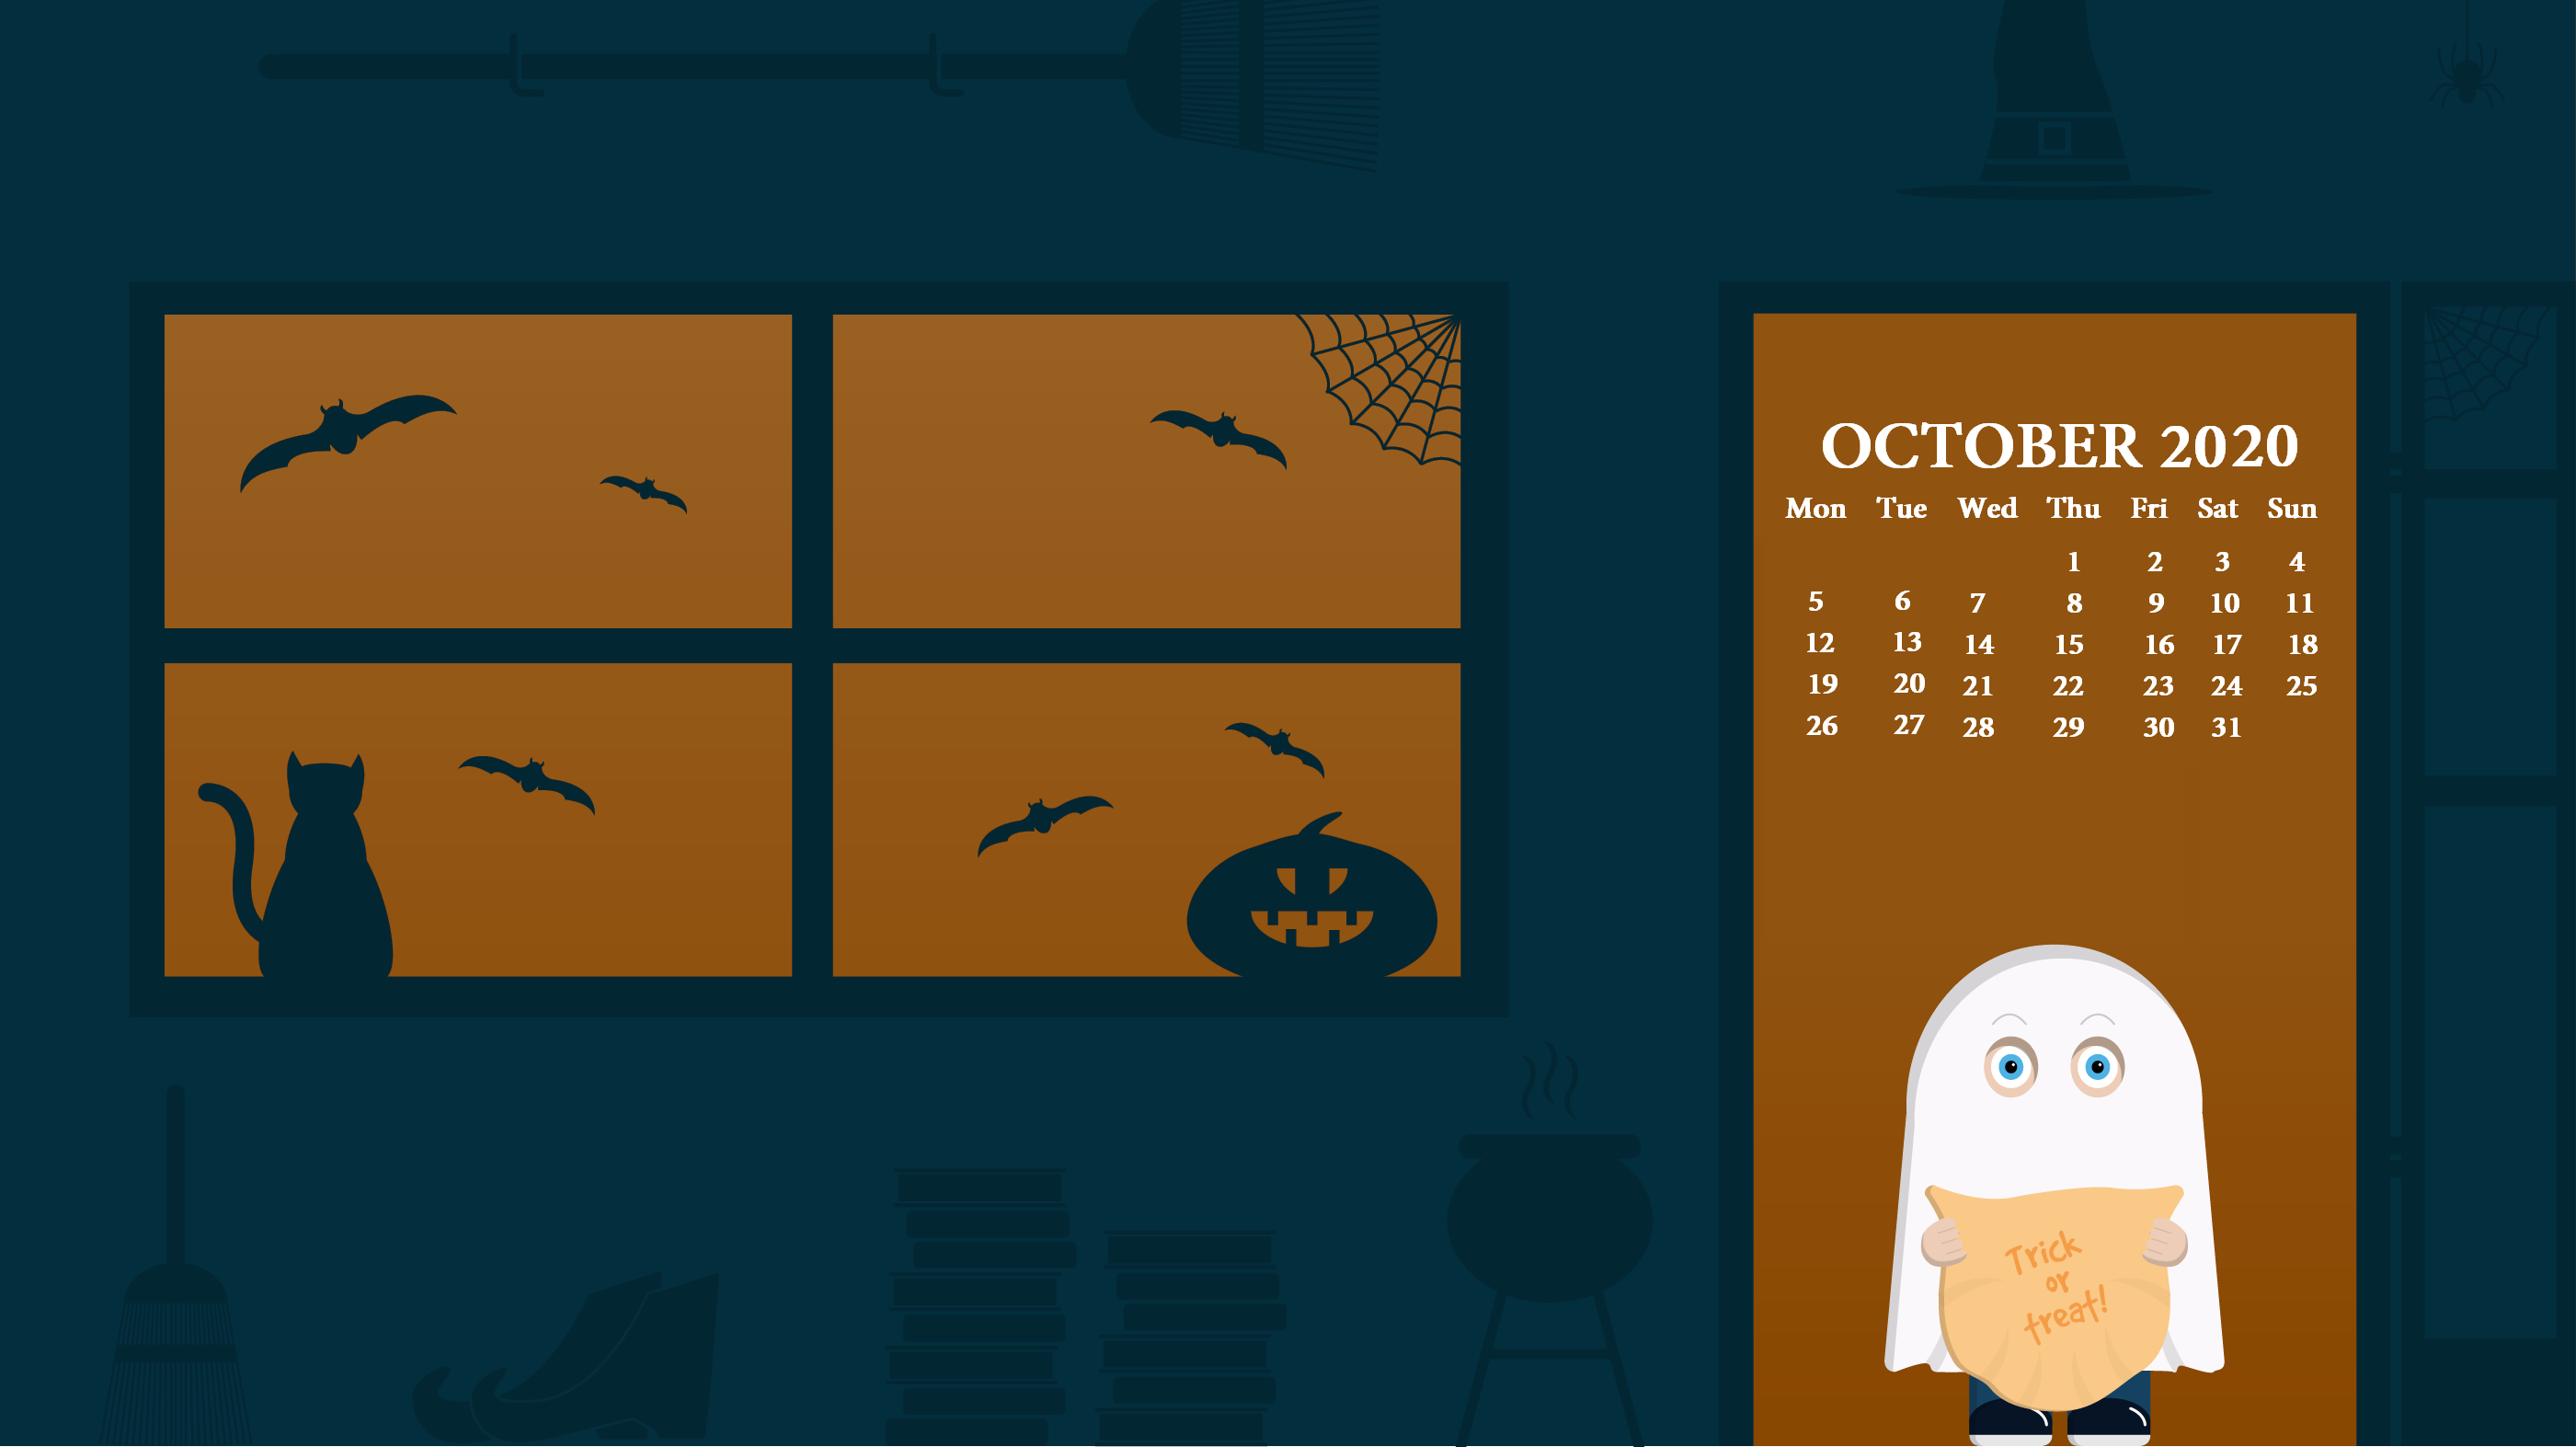 October 2020 Desktop Wallpaper Latest Calendar 2801x1573